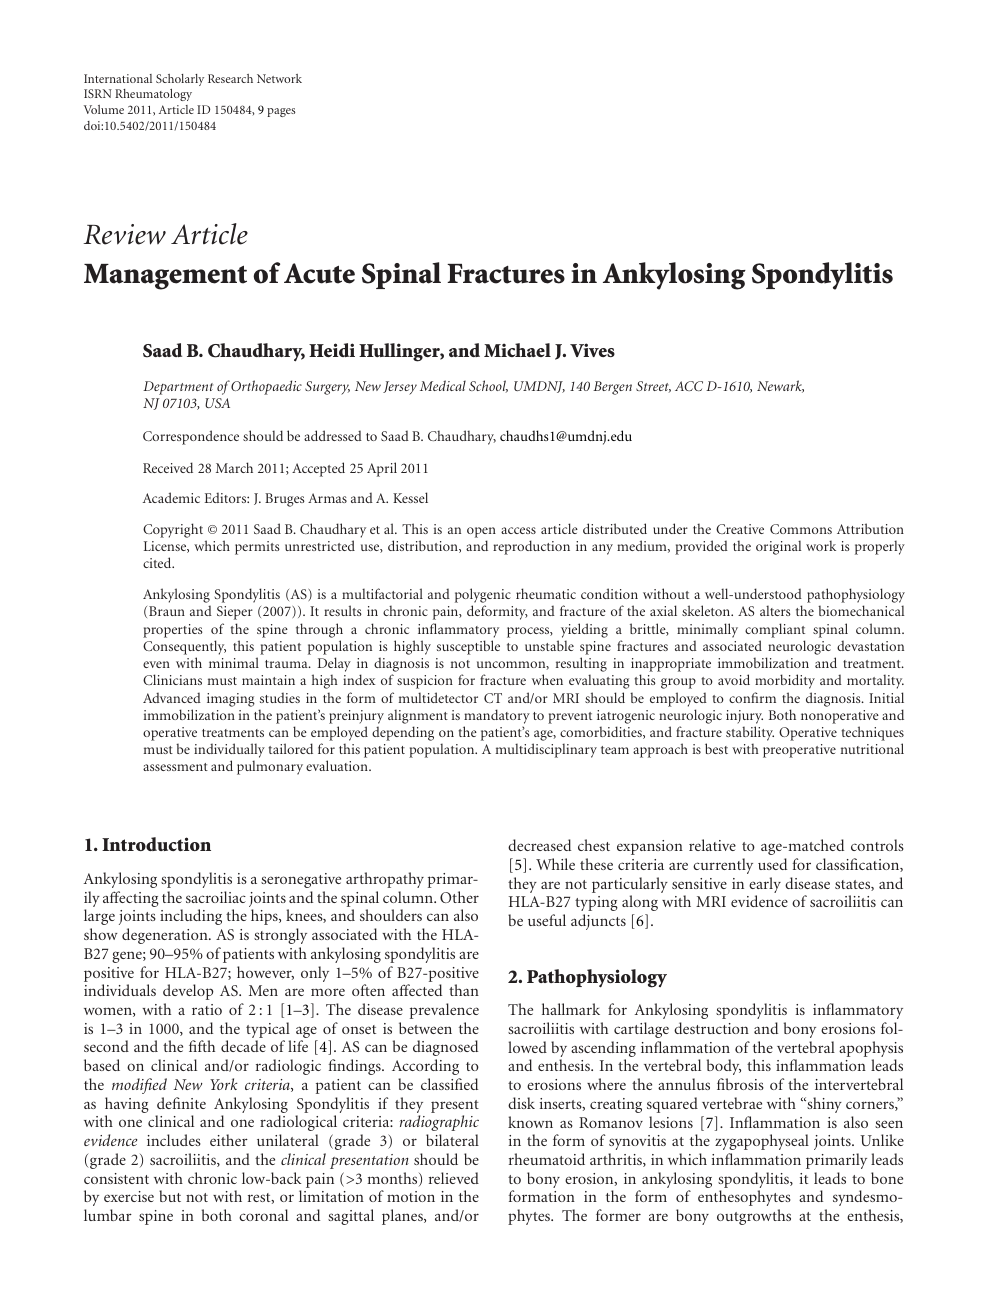 Management of Acute Spinal Fractures in Ankylosing